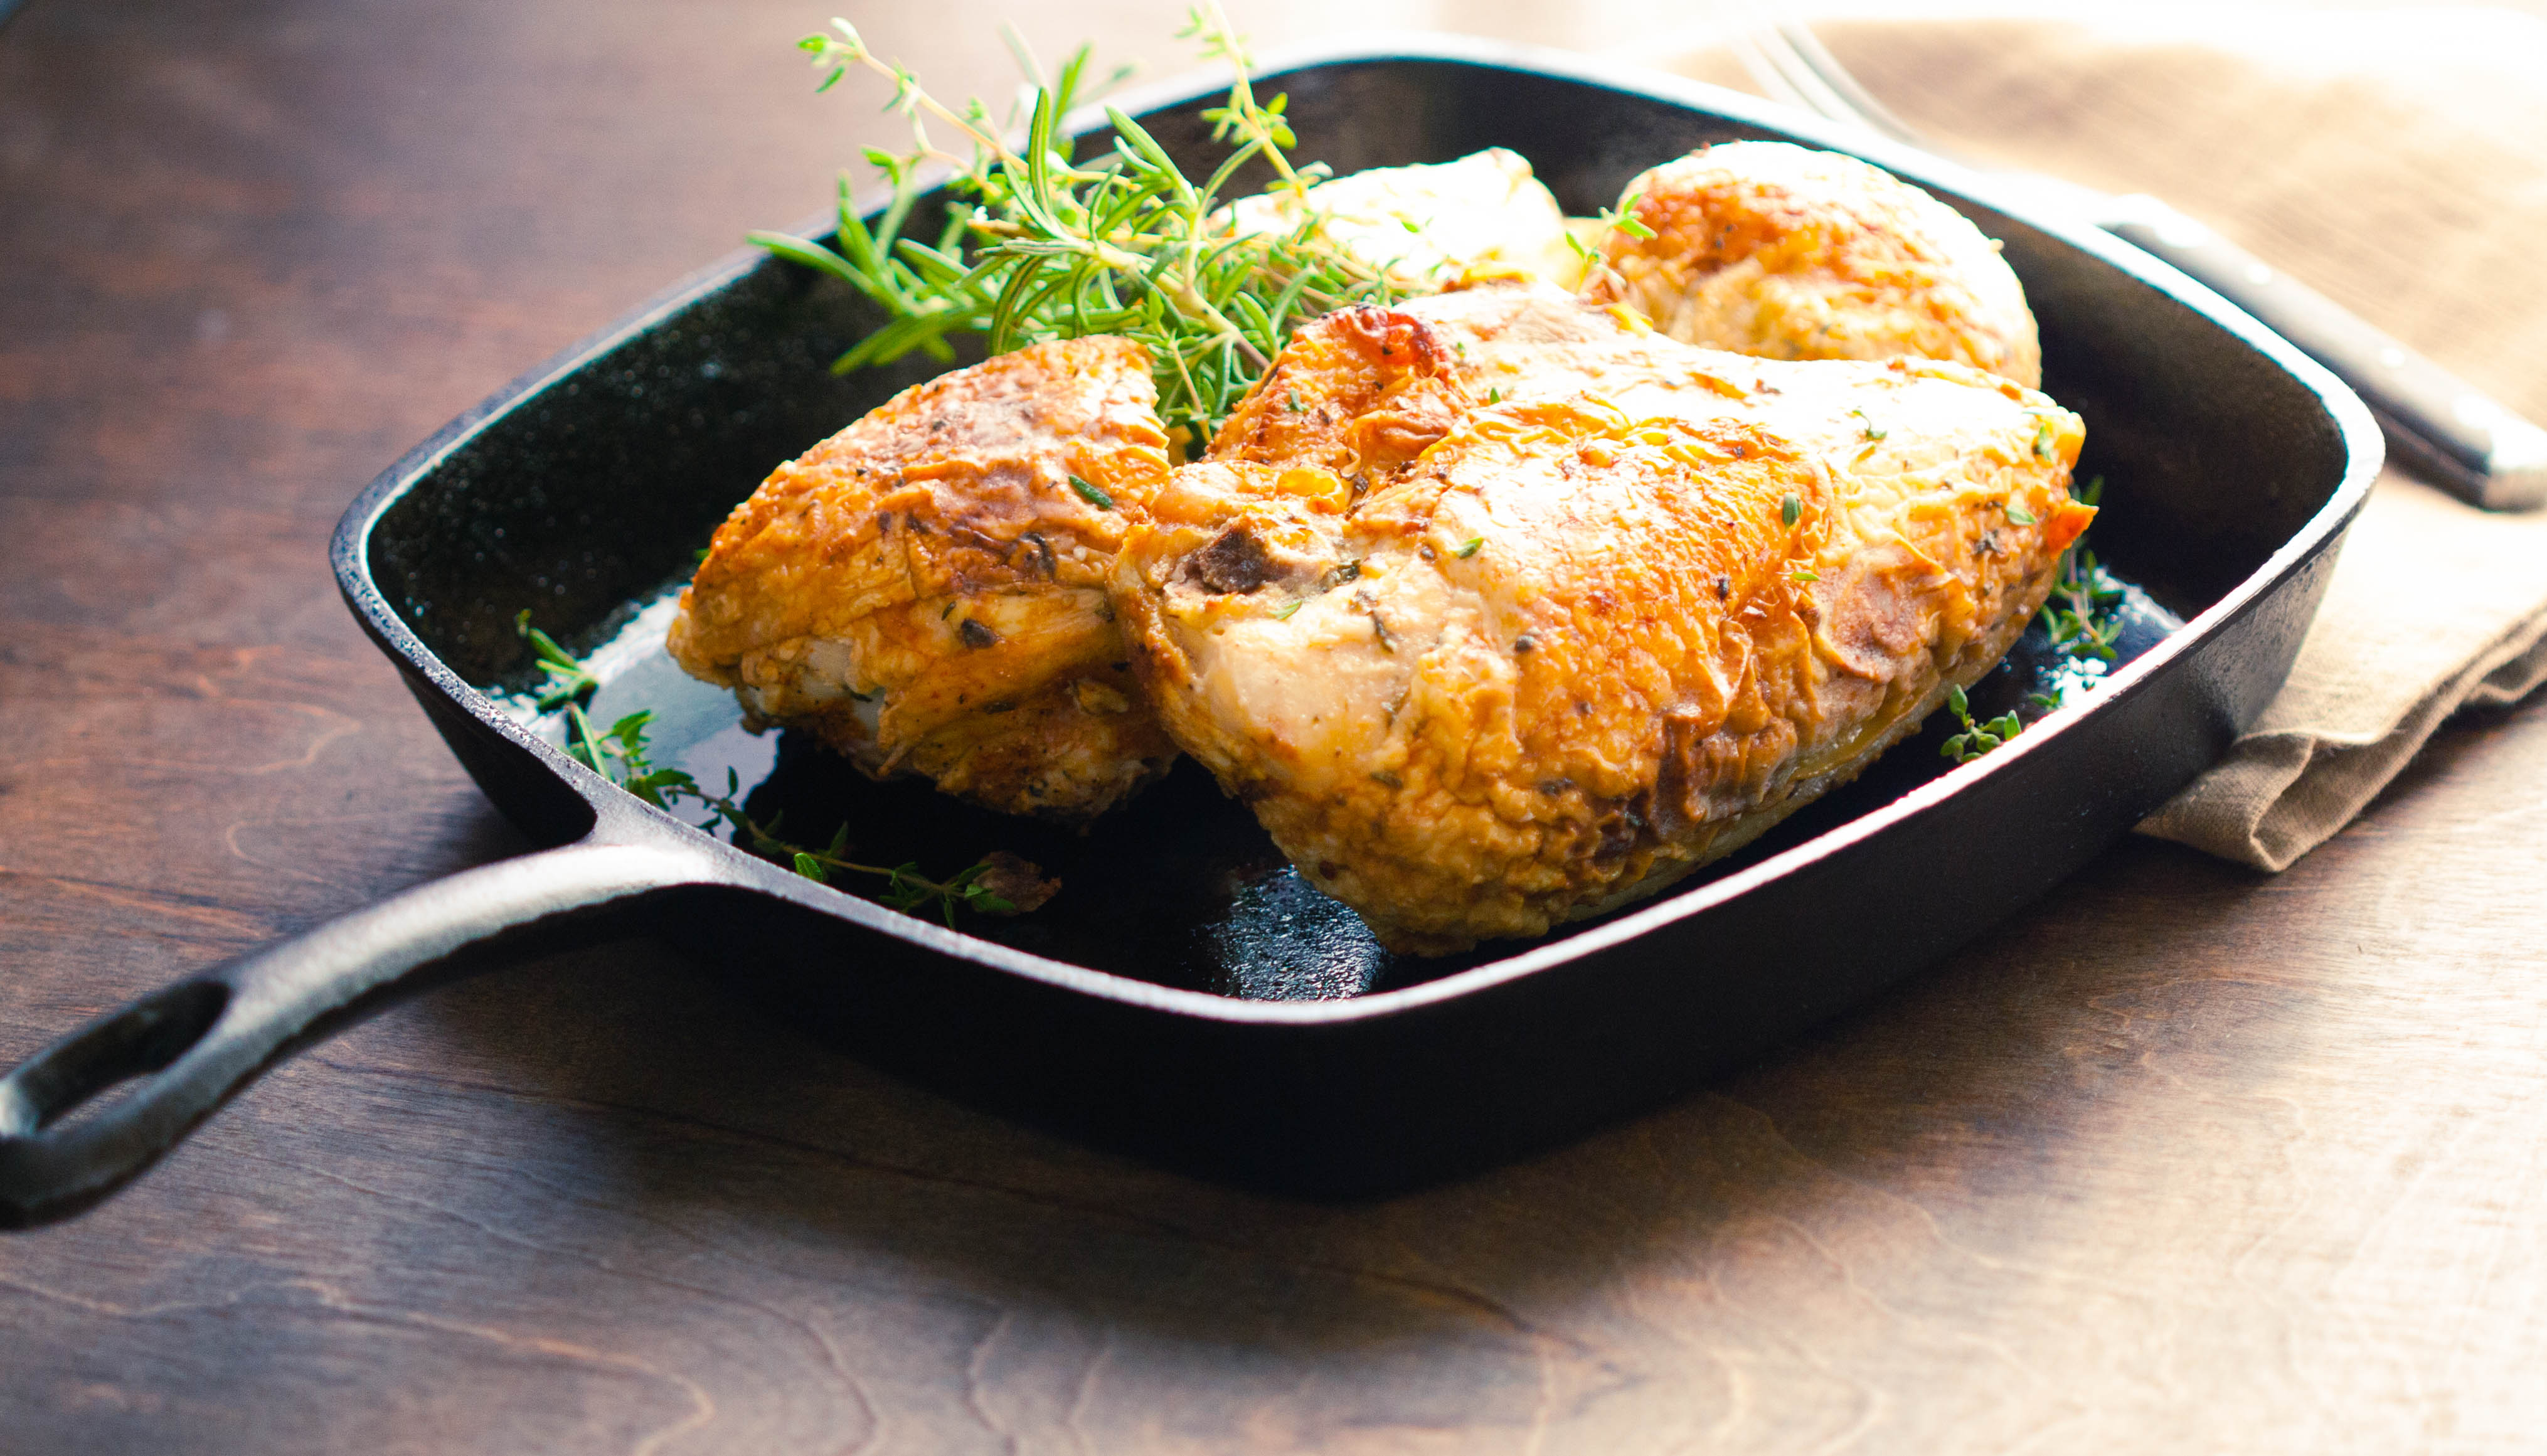 Pan grilled chicken with herbs recipe